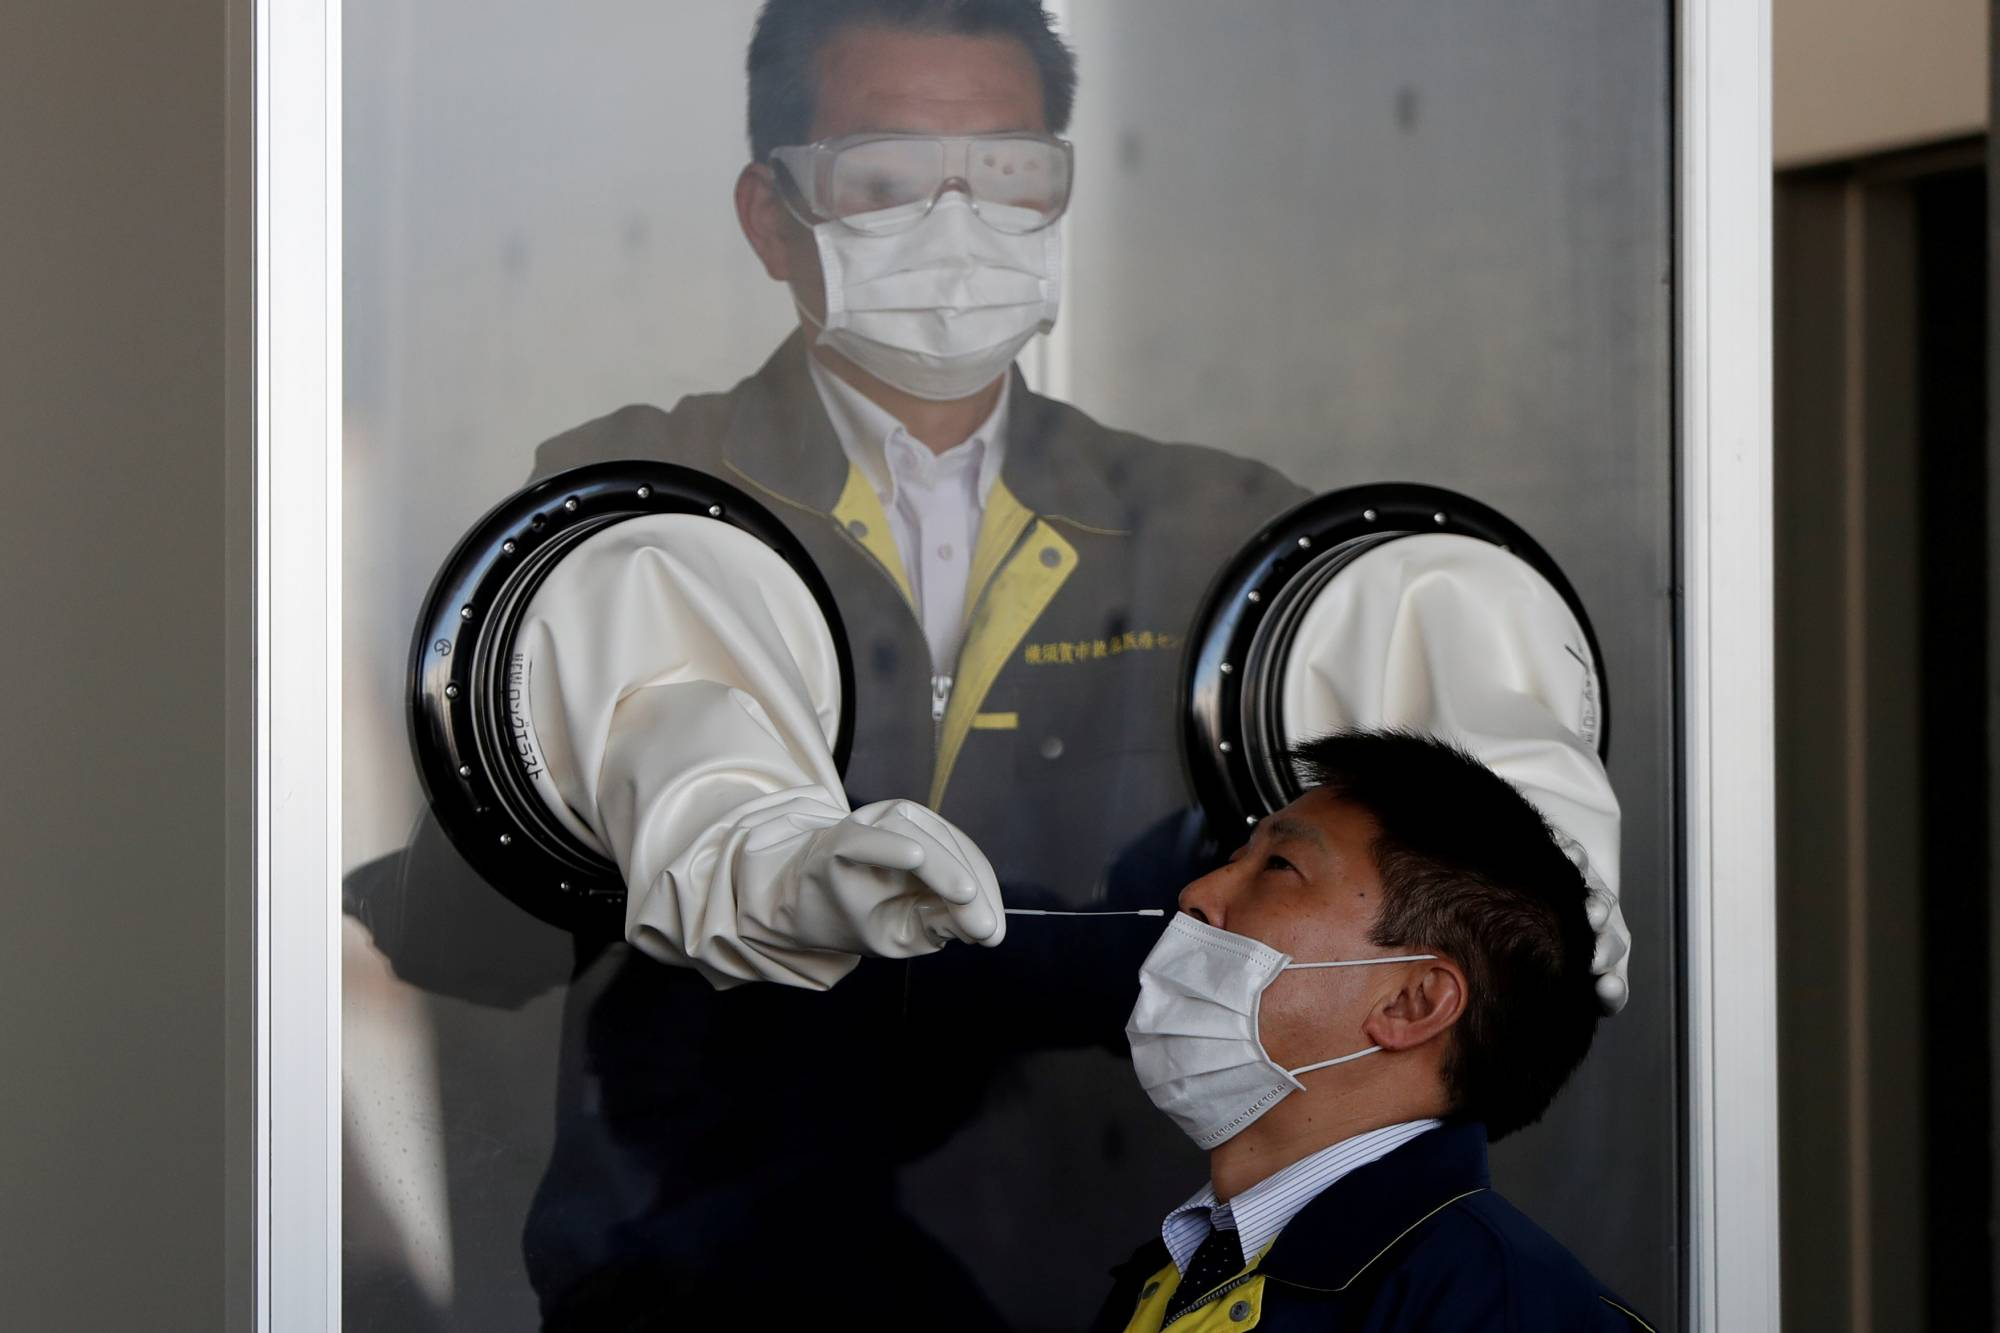 A medical worker conducts a simulation at a walk-in style polymerase chain reaction (PCR) test for the novel coronavirus at a makeshift facility in Yokosuka, Kanagawa Prefecture, on April 23. | REUTERS